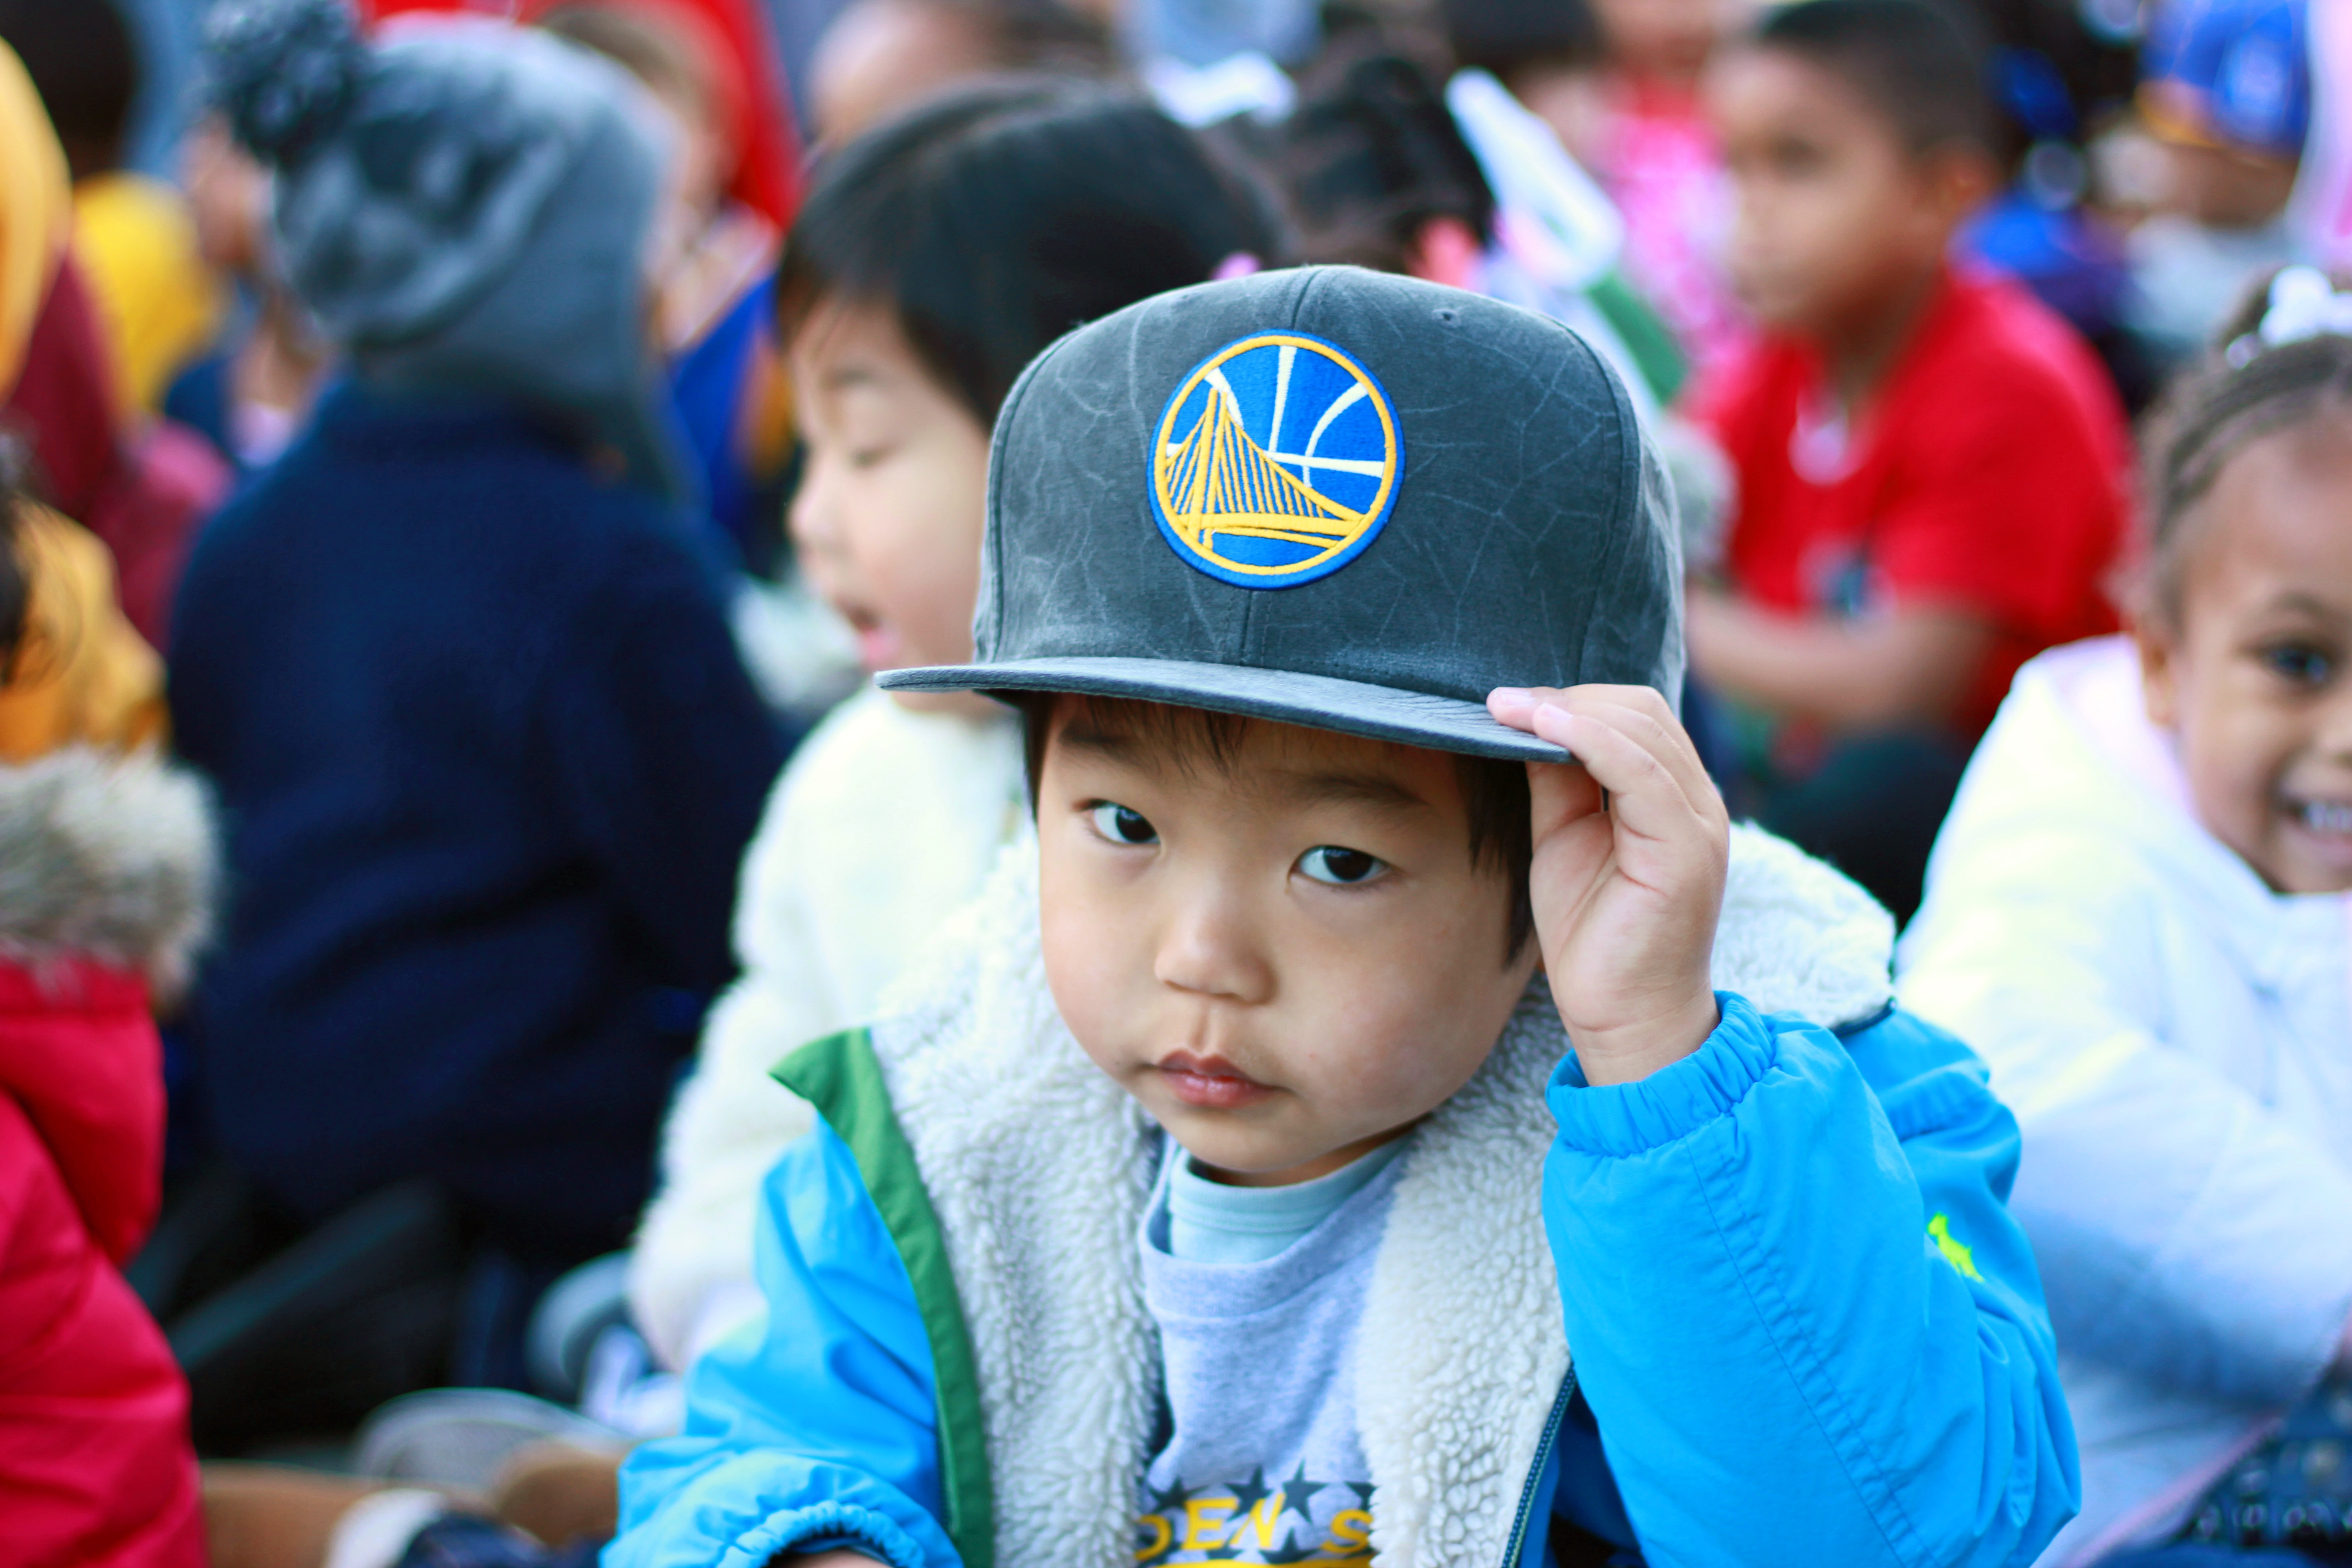 The Golden State Warriors Community Foundation will be awarded the 2017 Children's Choice Award.